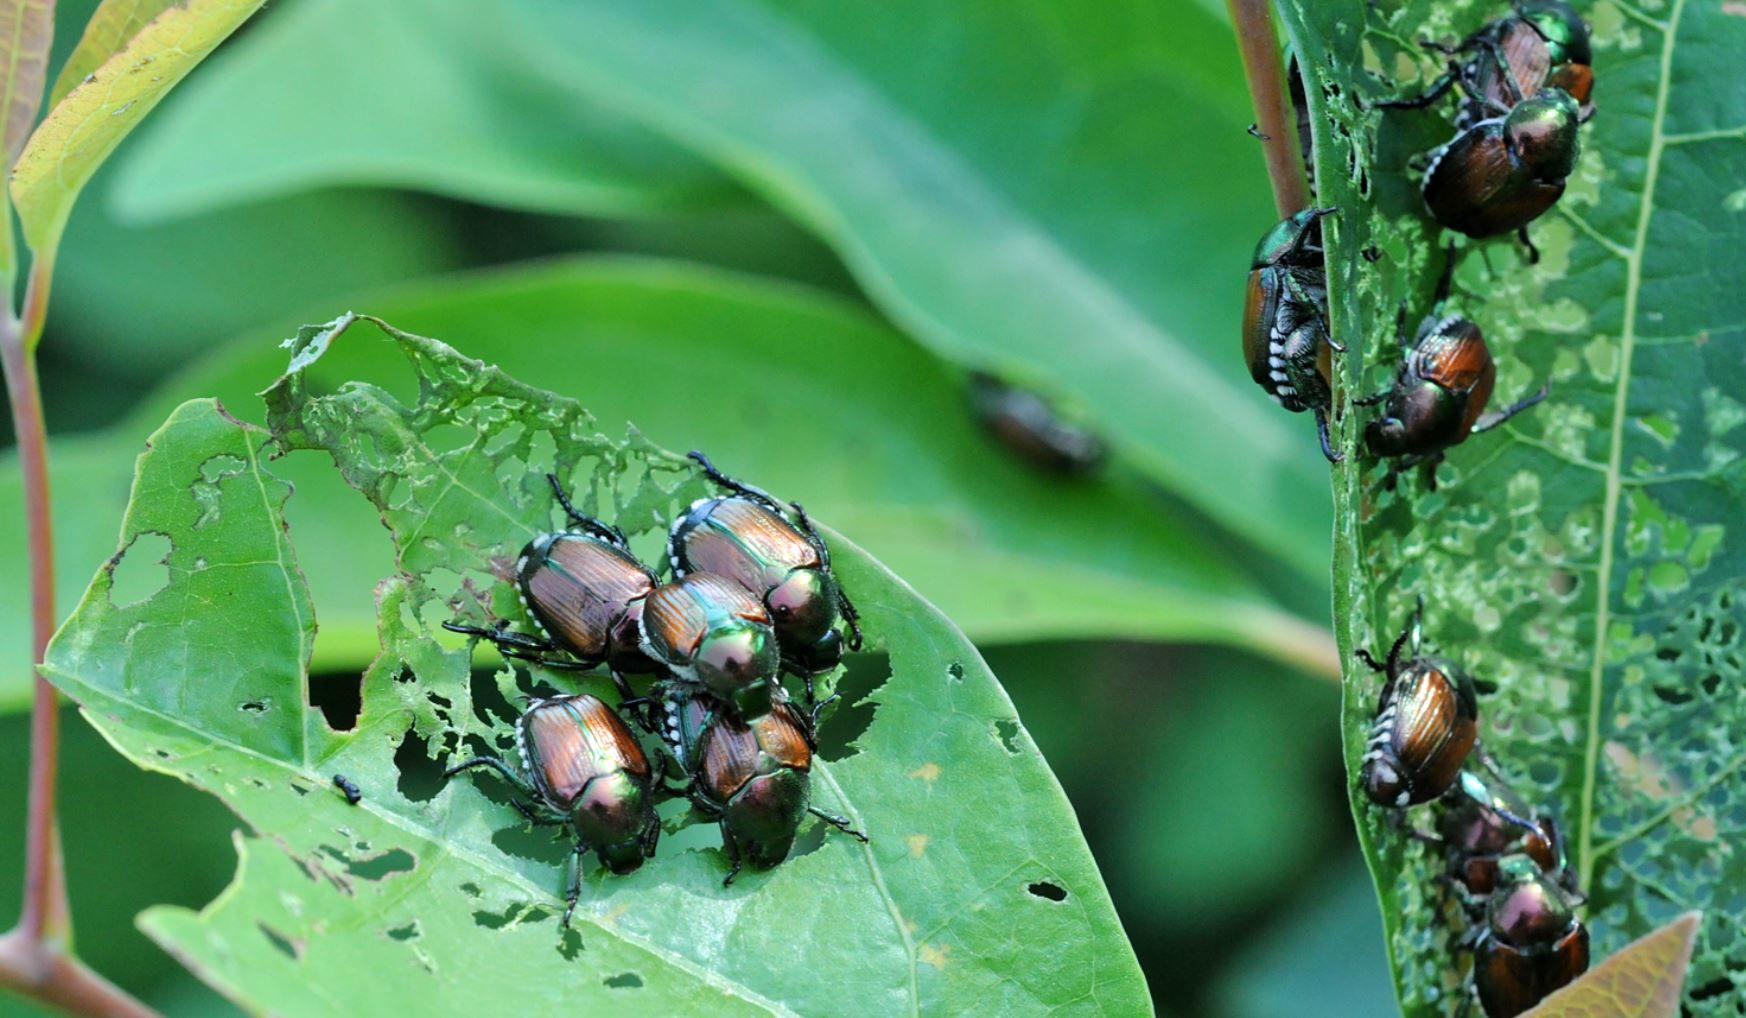 japanese beetles on a leaf